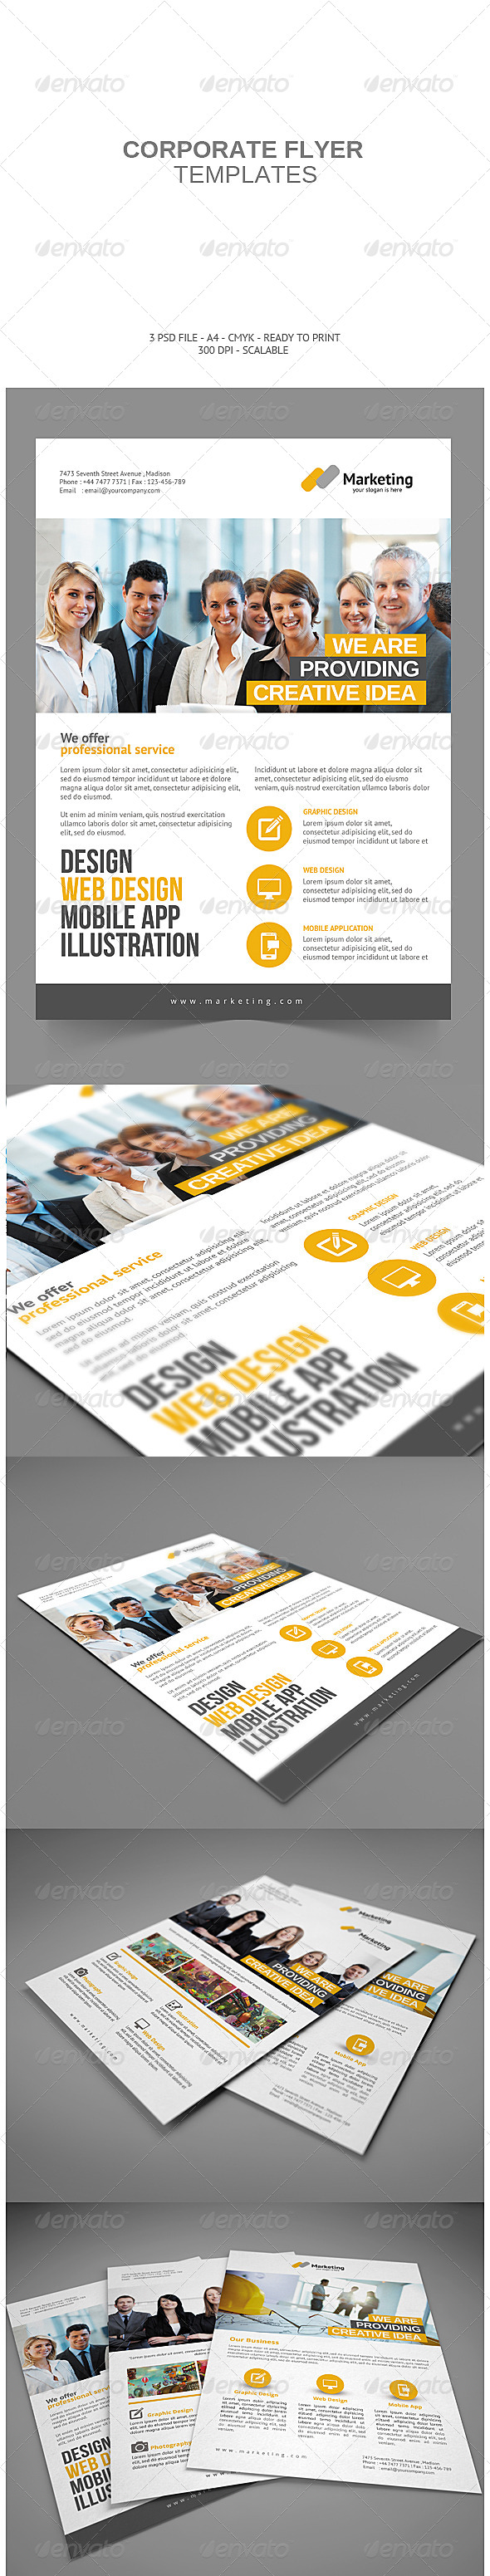 GraphicRiver Corporate Flyer 7793450